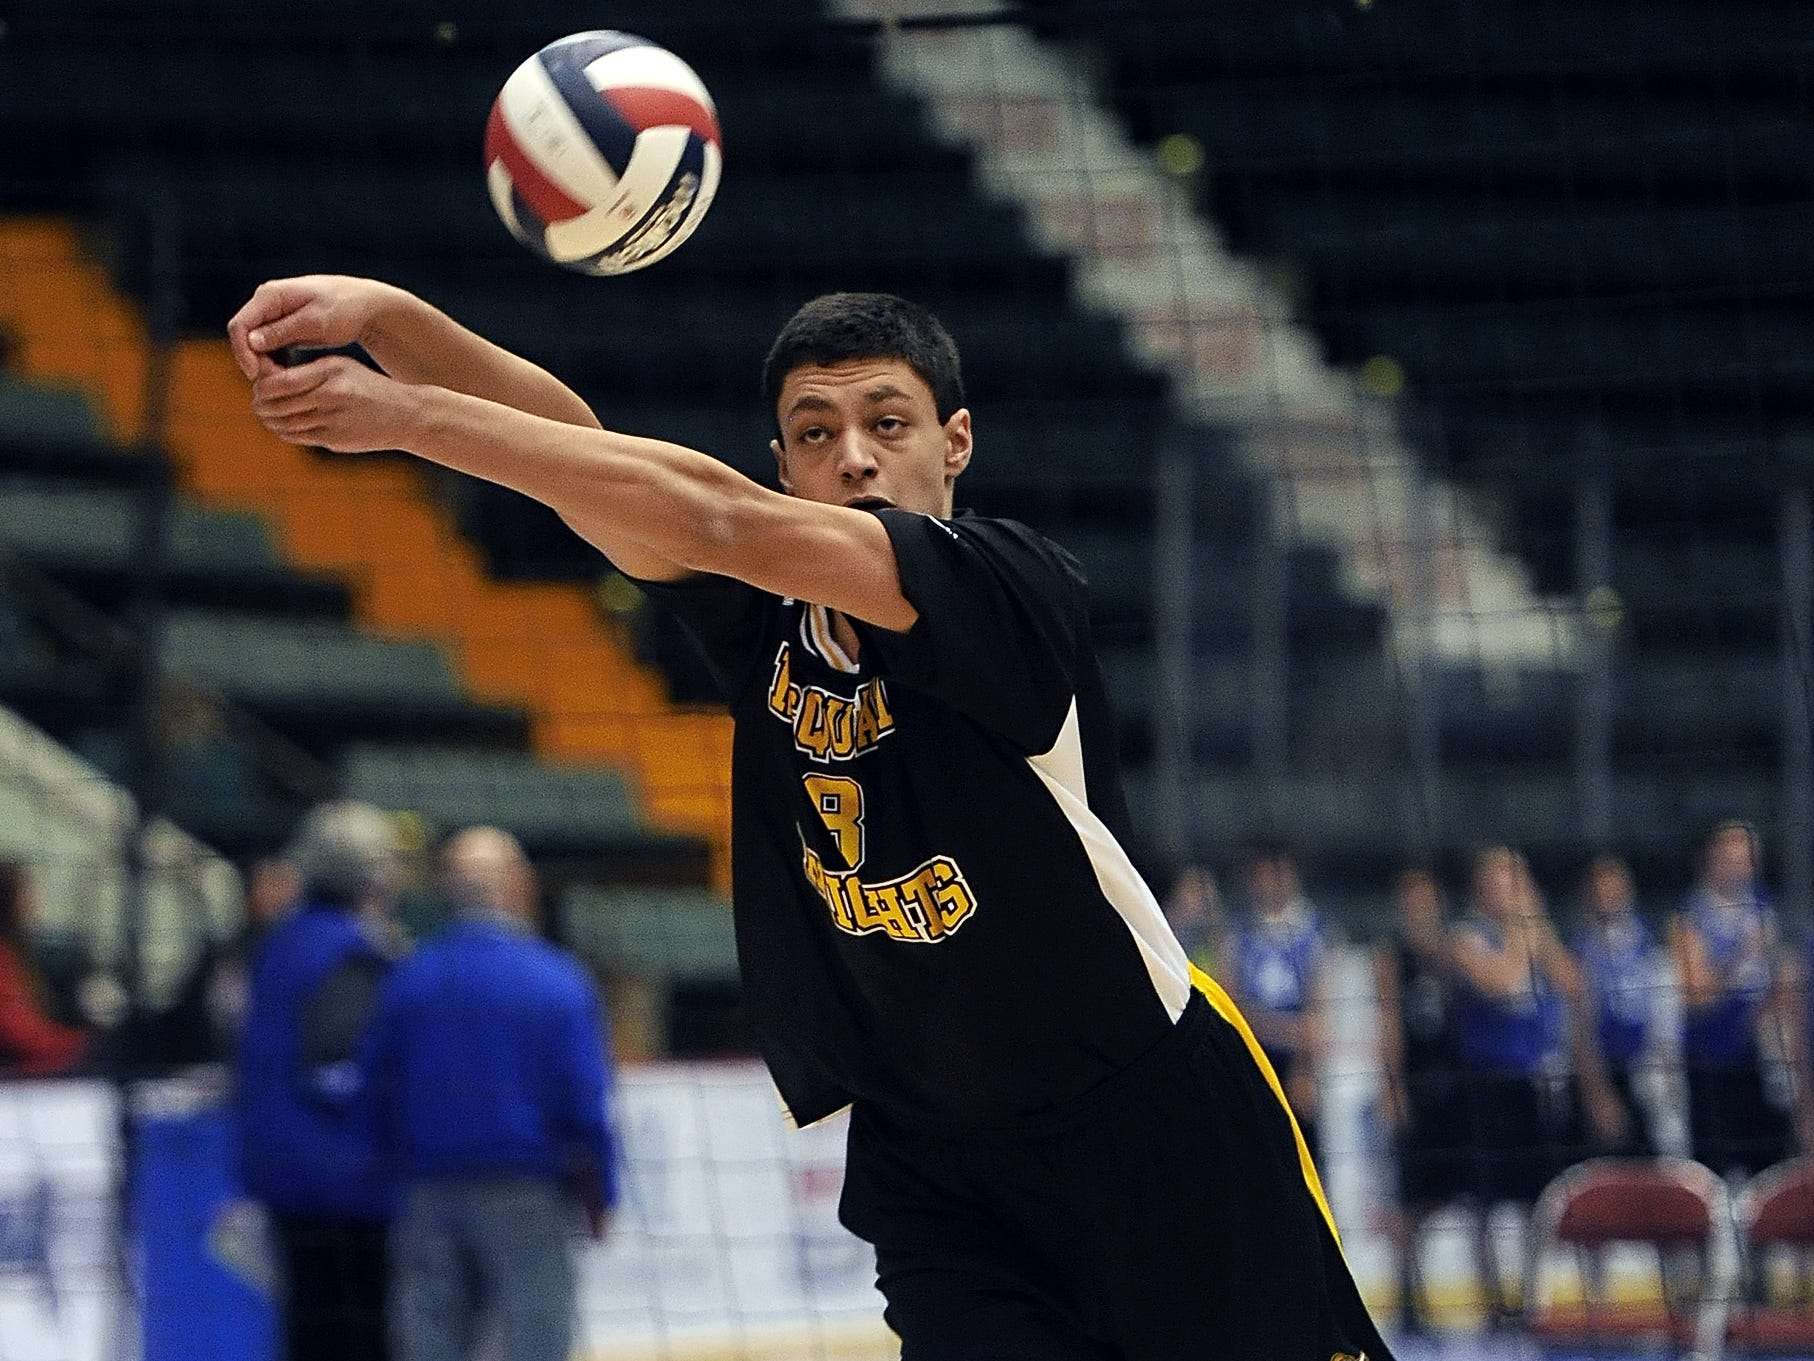 McQuaid's Charlie Siragusa passes the ball towards the net during Division 1 pool play against Bethlehem at the NYSPHSAA Boy's Volleyball Championships held at the Glens Falls Civic Center on Friday, November 11, 2014.  McQuaid beat Bethlehem-II in both games (25-12, 25-19).